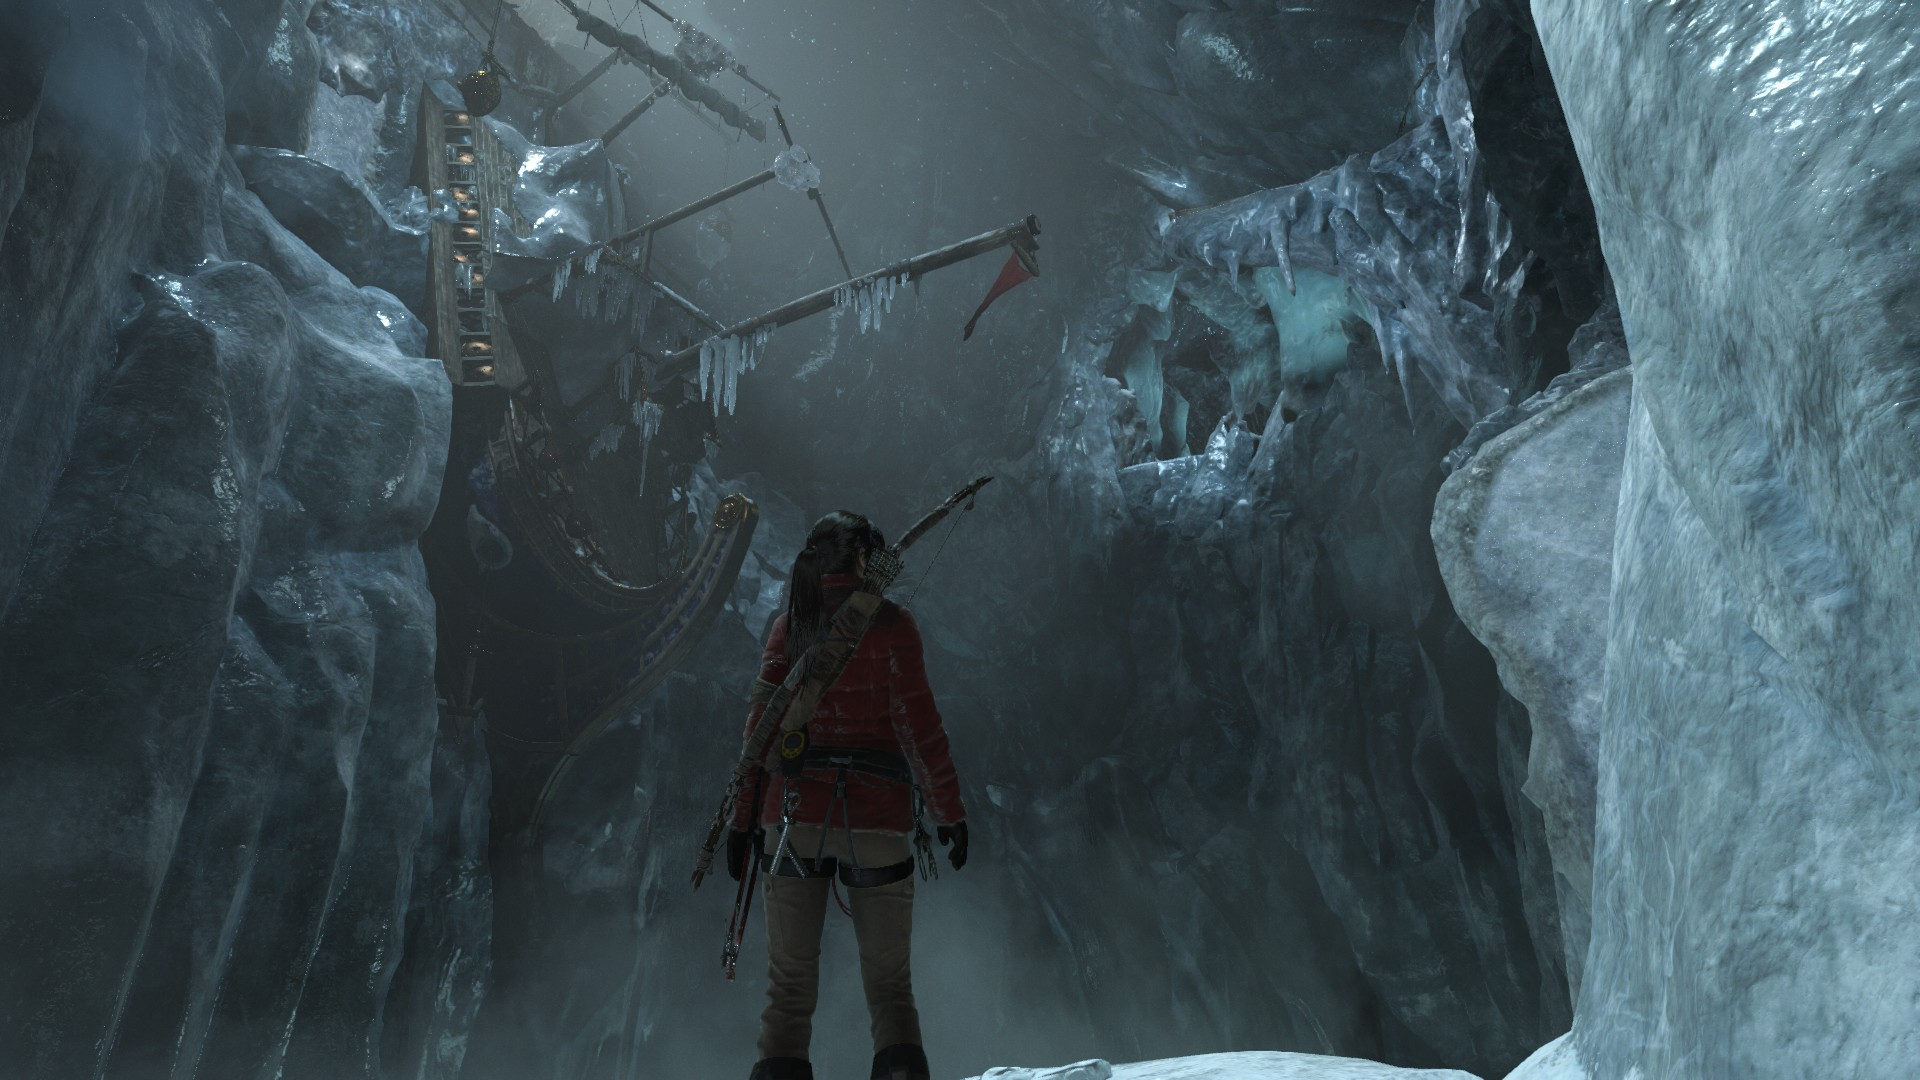 Rise Of The Tomb Raider Photo Gallery